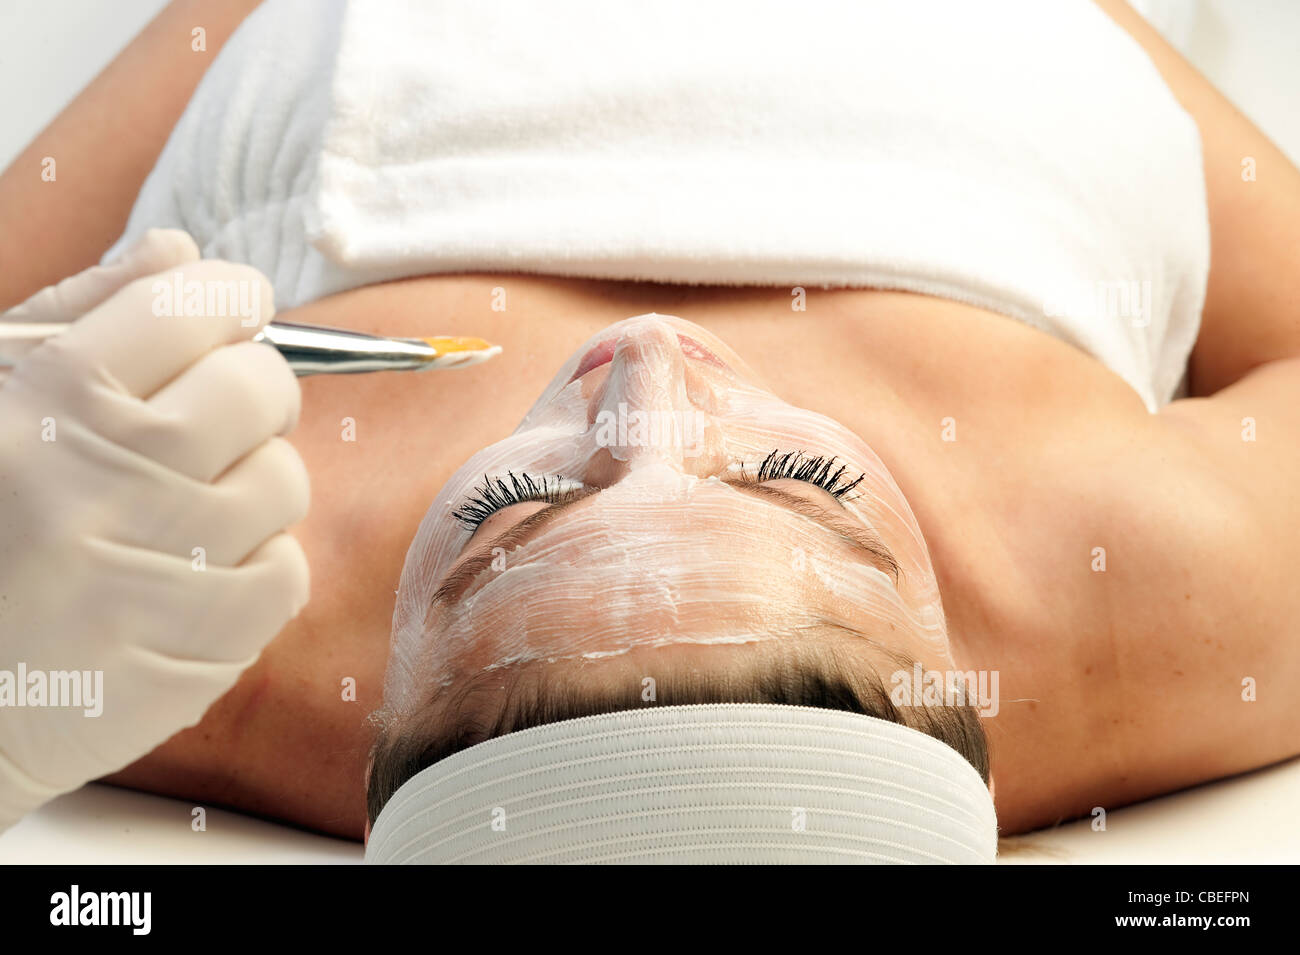 Woman getting a facial treatment at a spa. - Stock Image